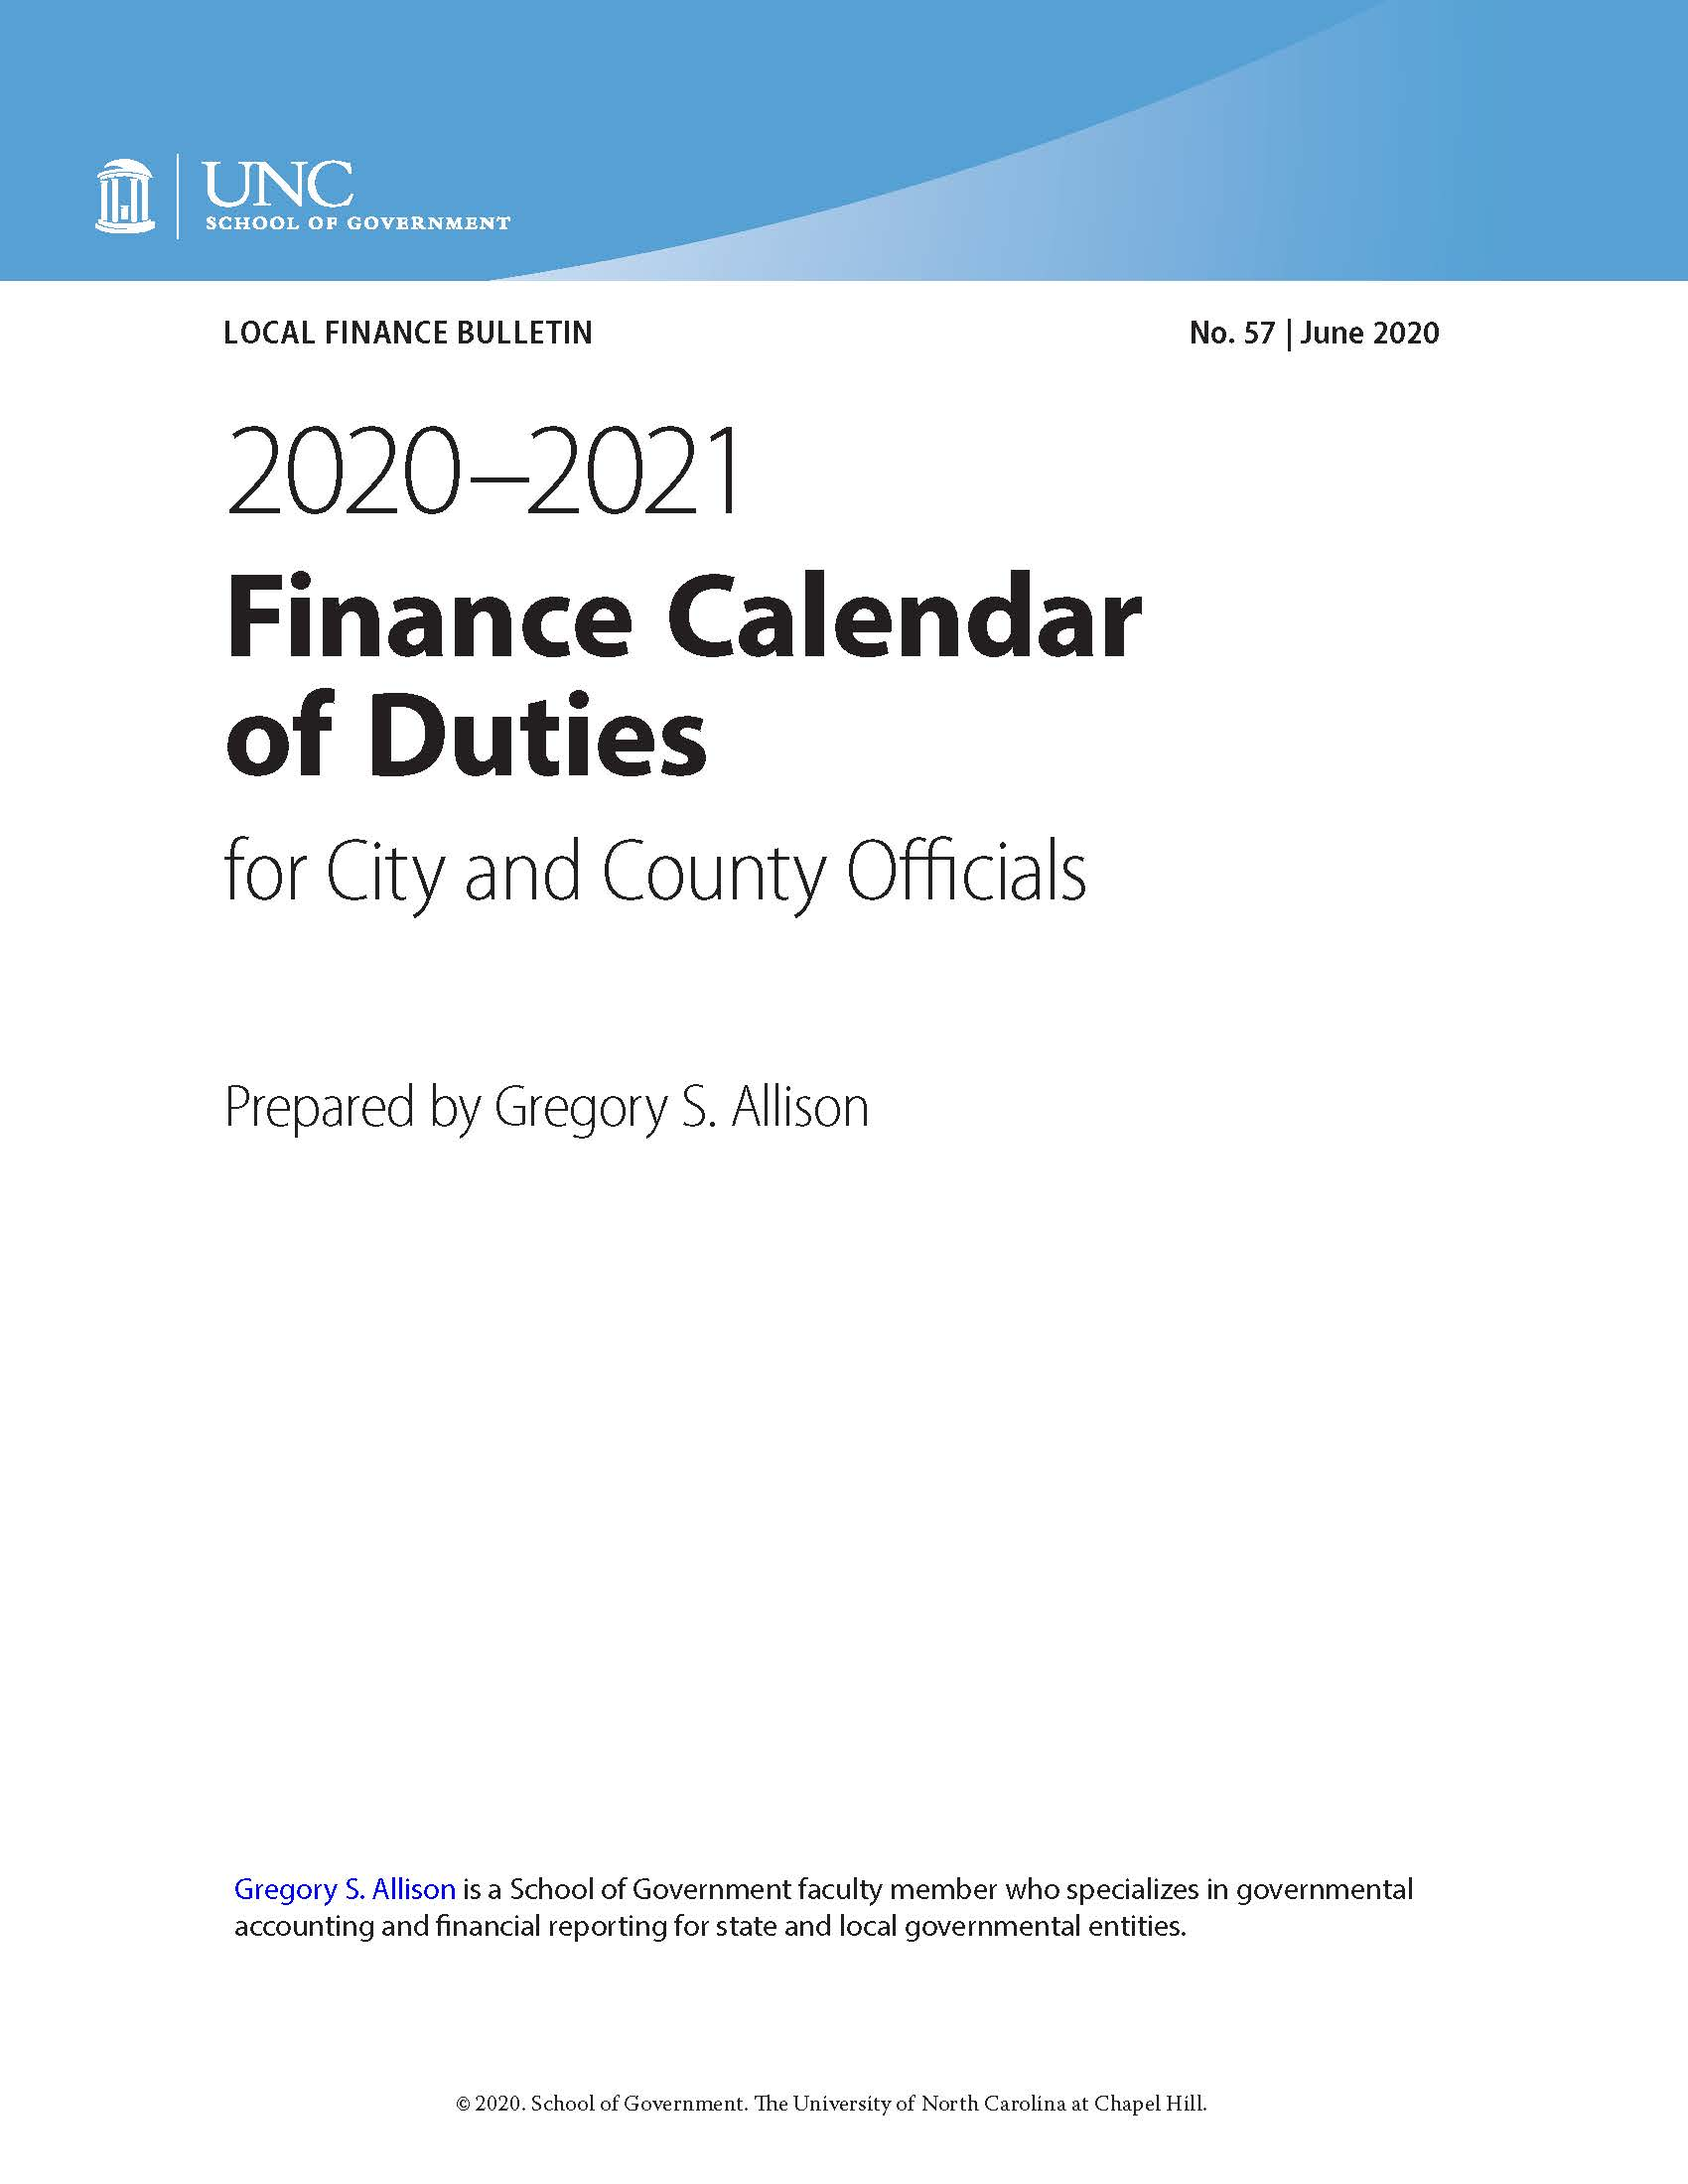 2020–21 Finance Calendar of Duties for City and County Officials